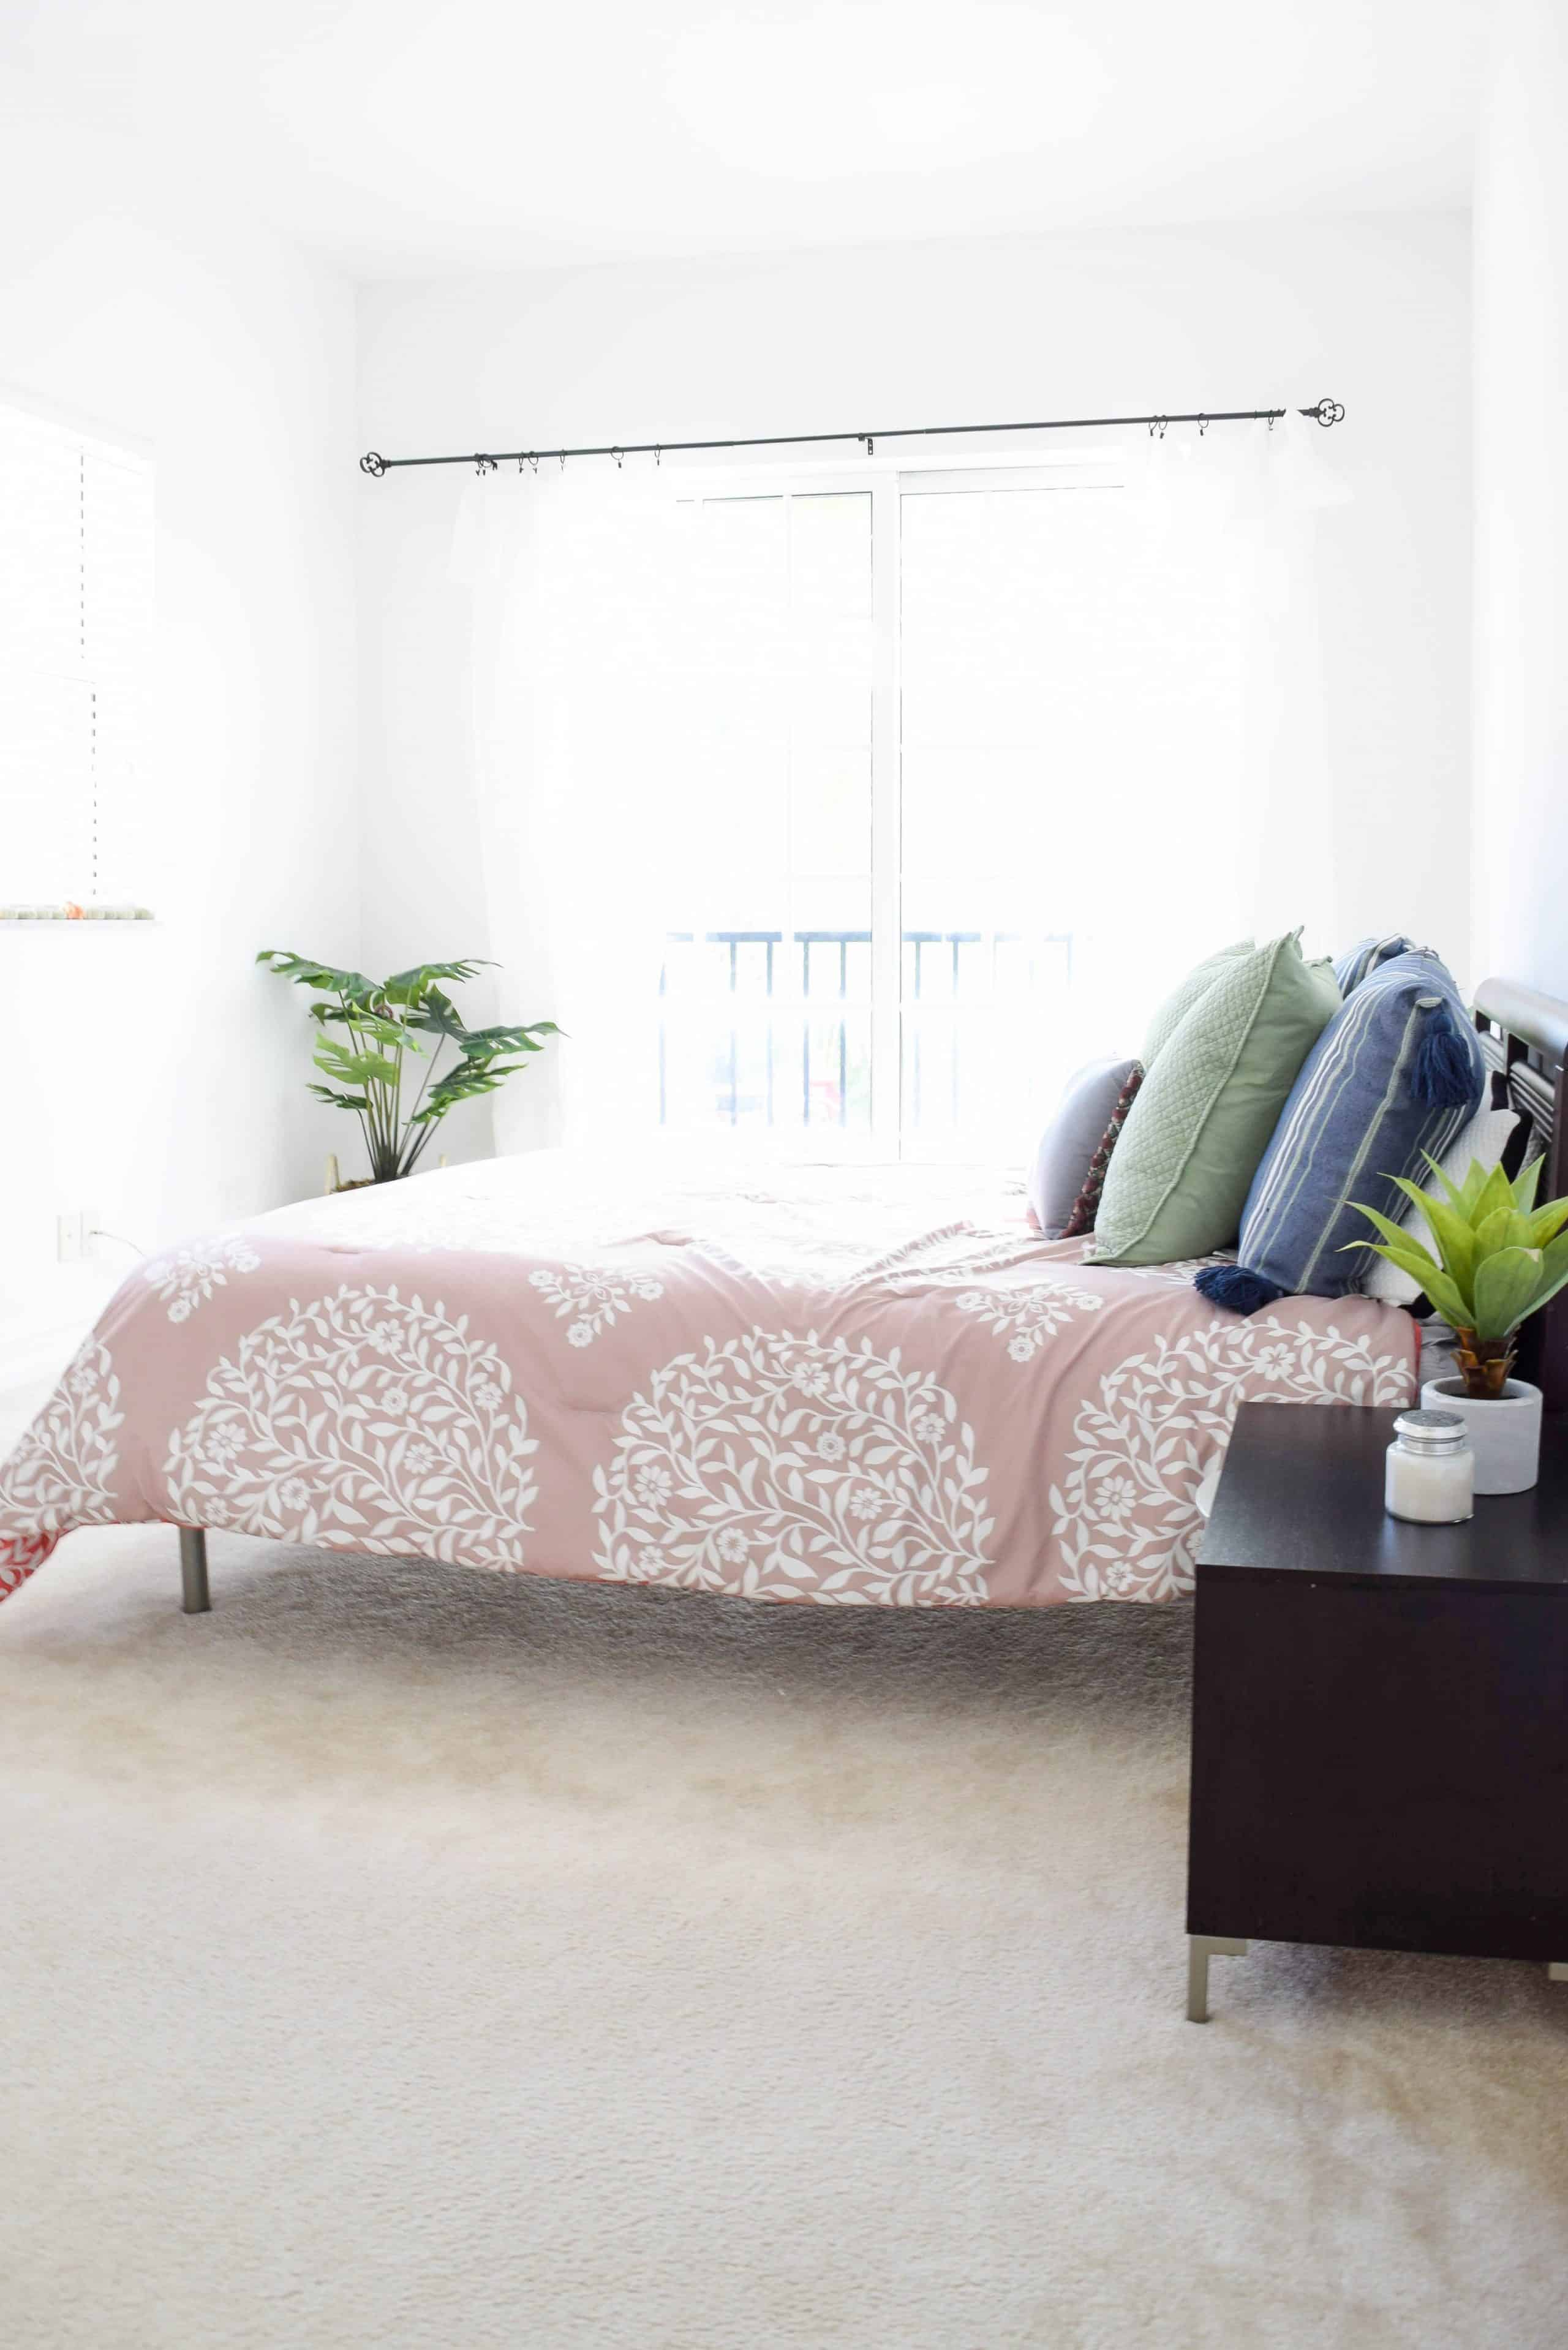 guest bedroom ideas upcycling furniture upcycled furniture